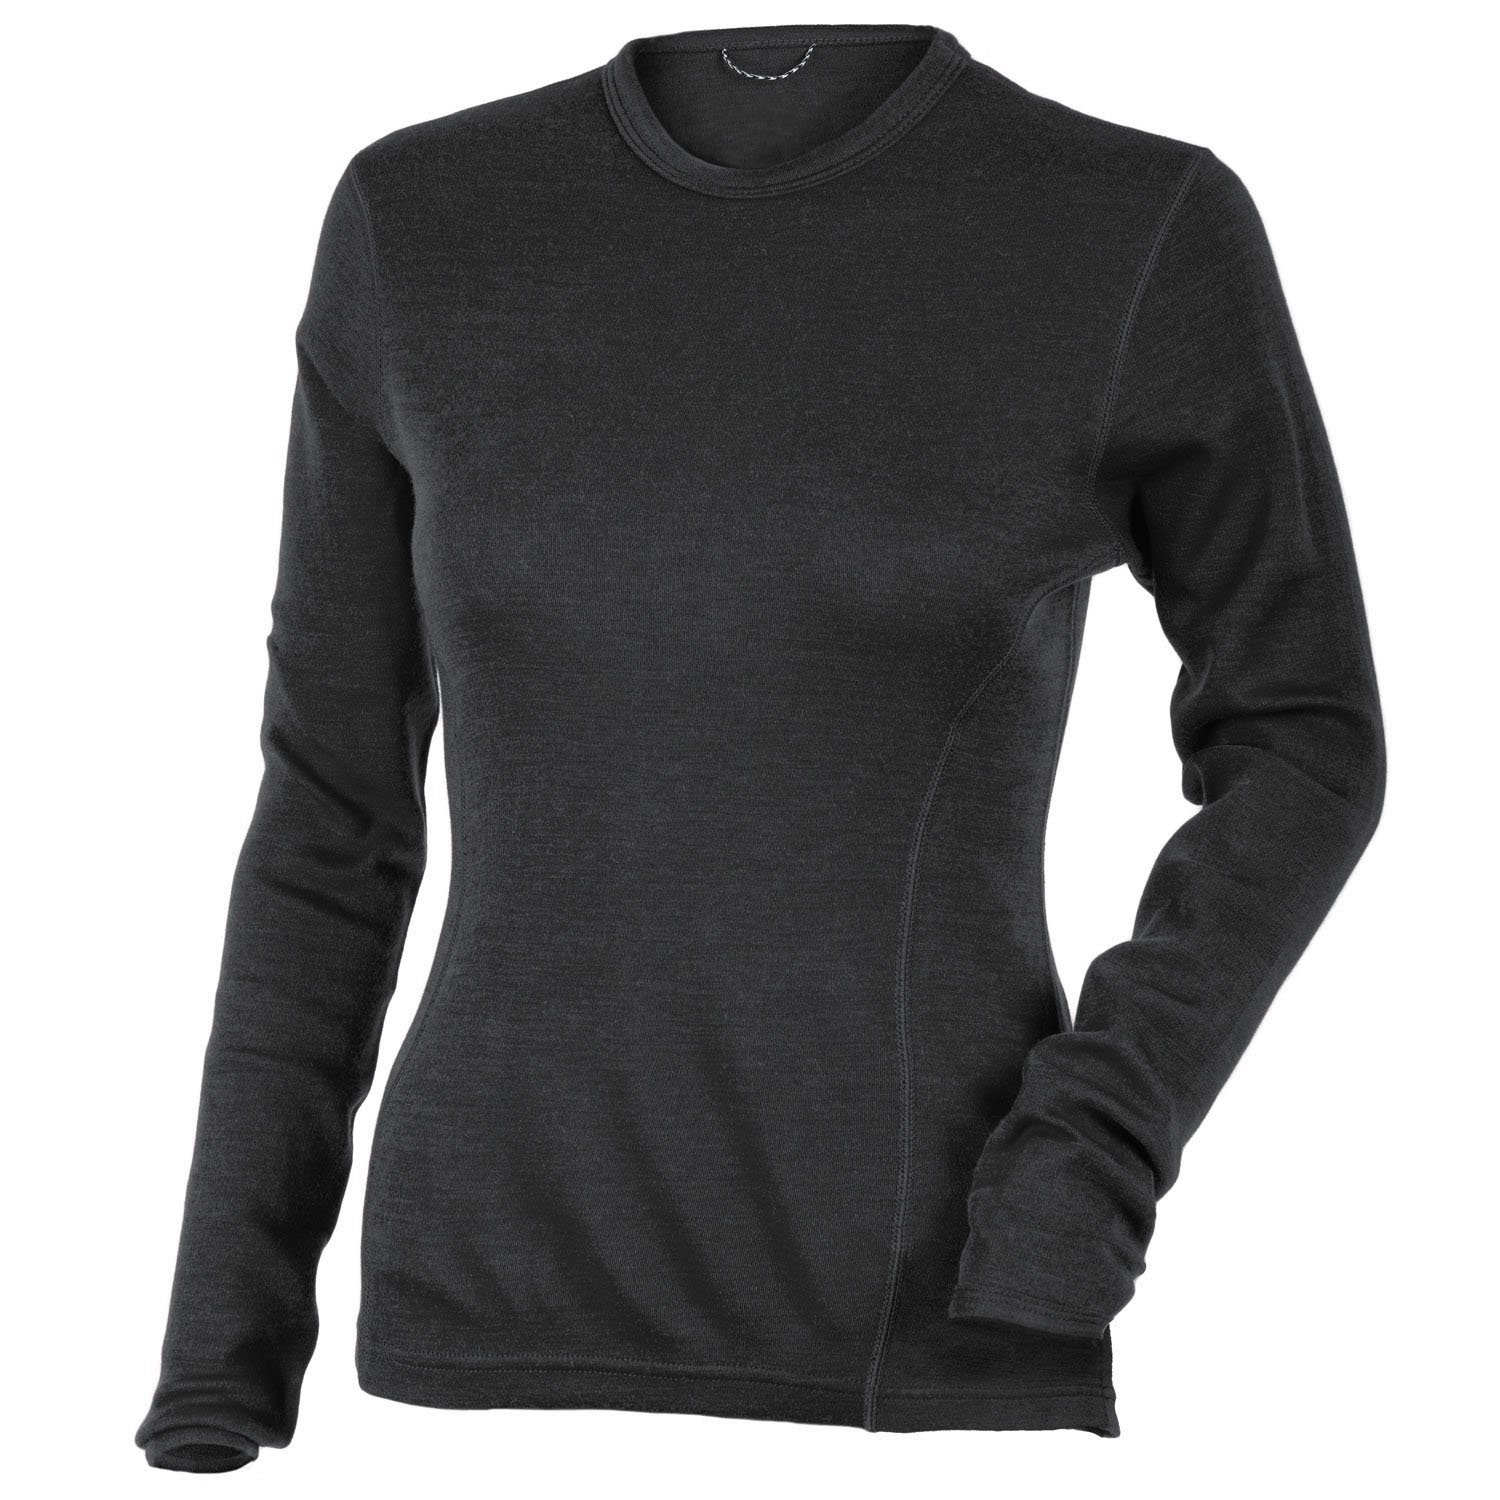 MERIWOOL Women's Merino Wool Midweight Baselayer Crew - Charcoal Gray/Medium